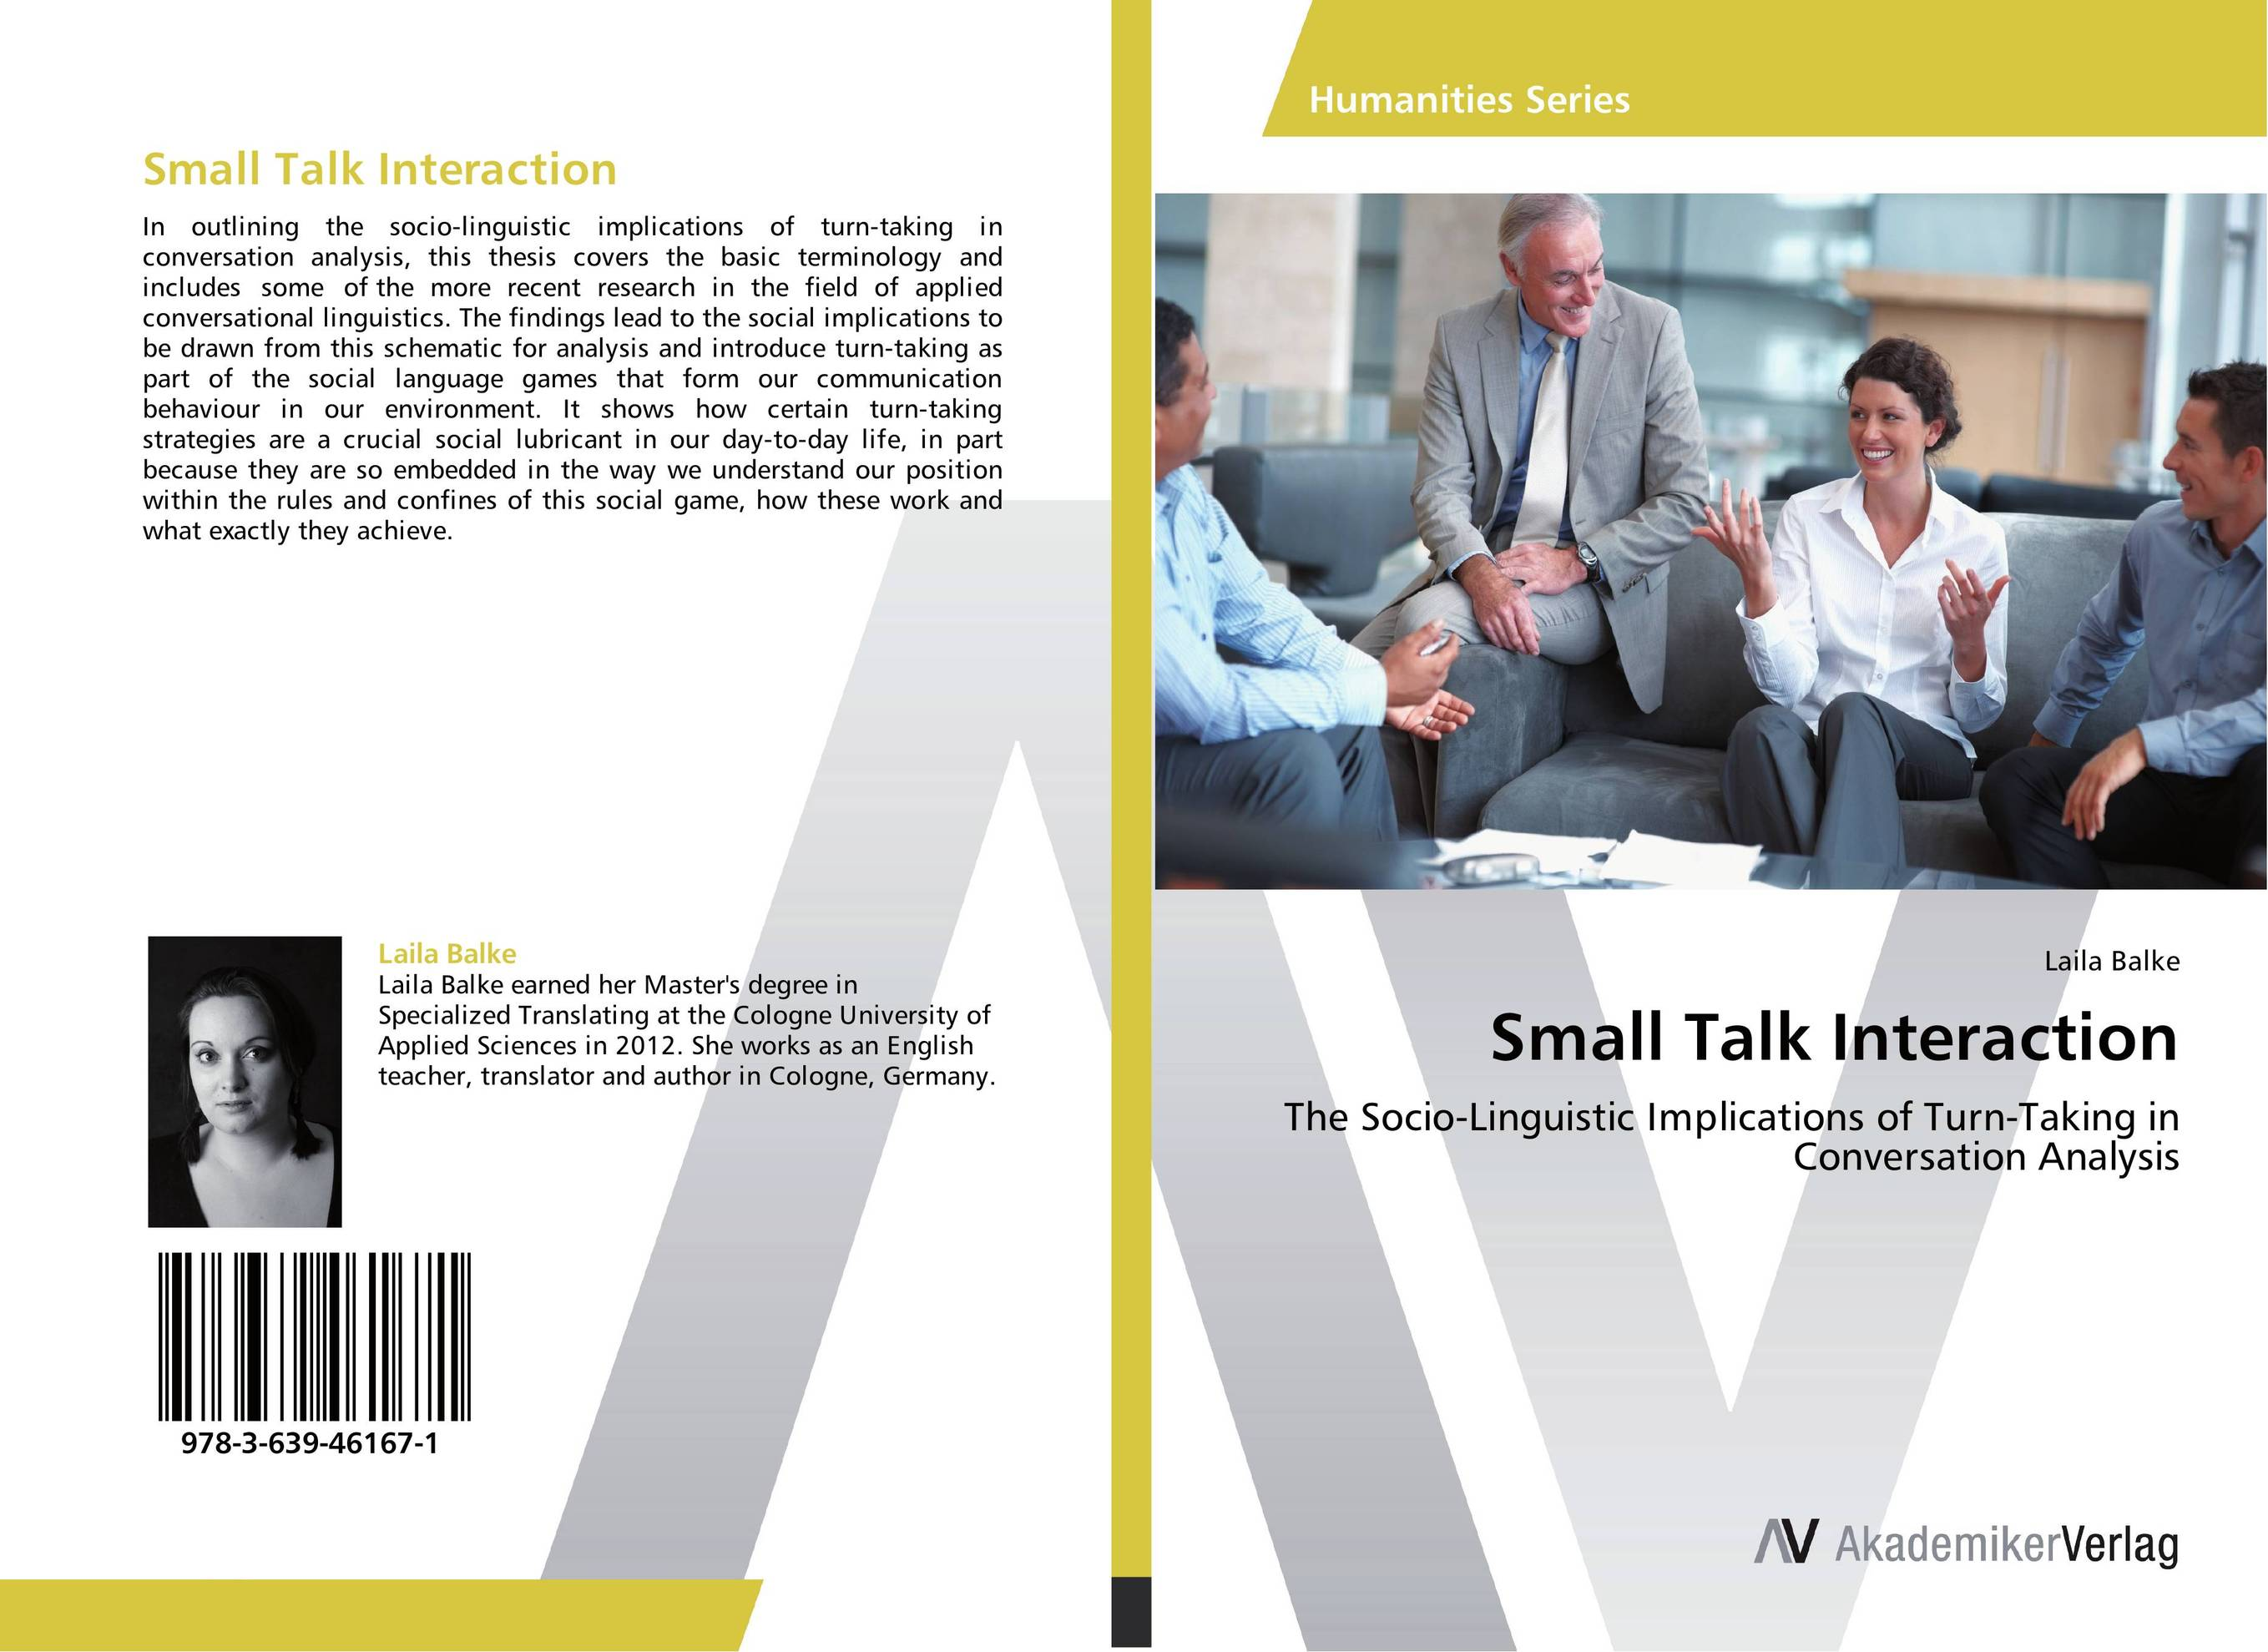 Small Talk Interaction social housing in glasgow volume 2